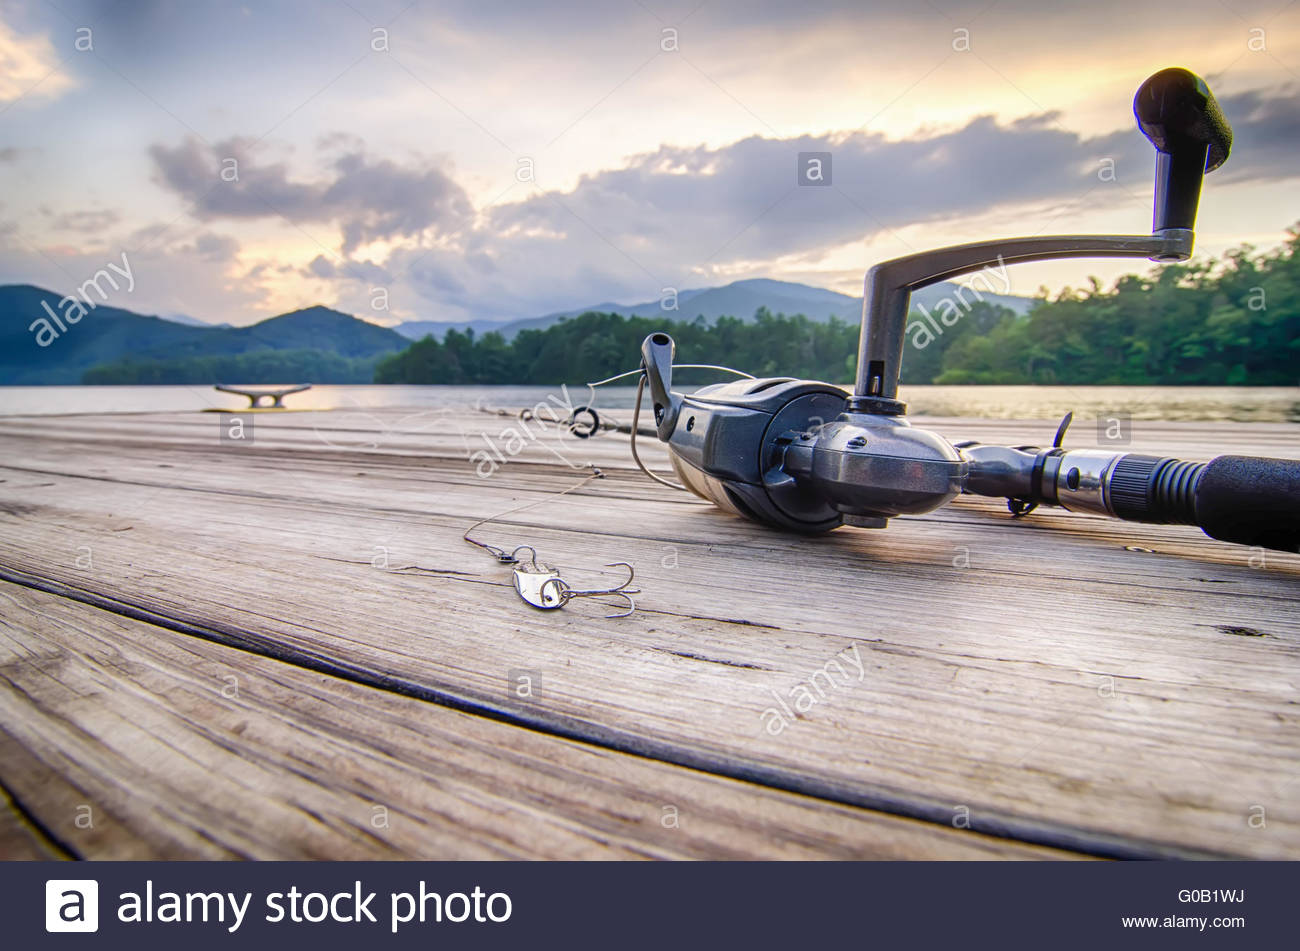 fishing tackle on a wooden float with mountain background in nc 1300x951